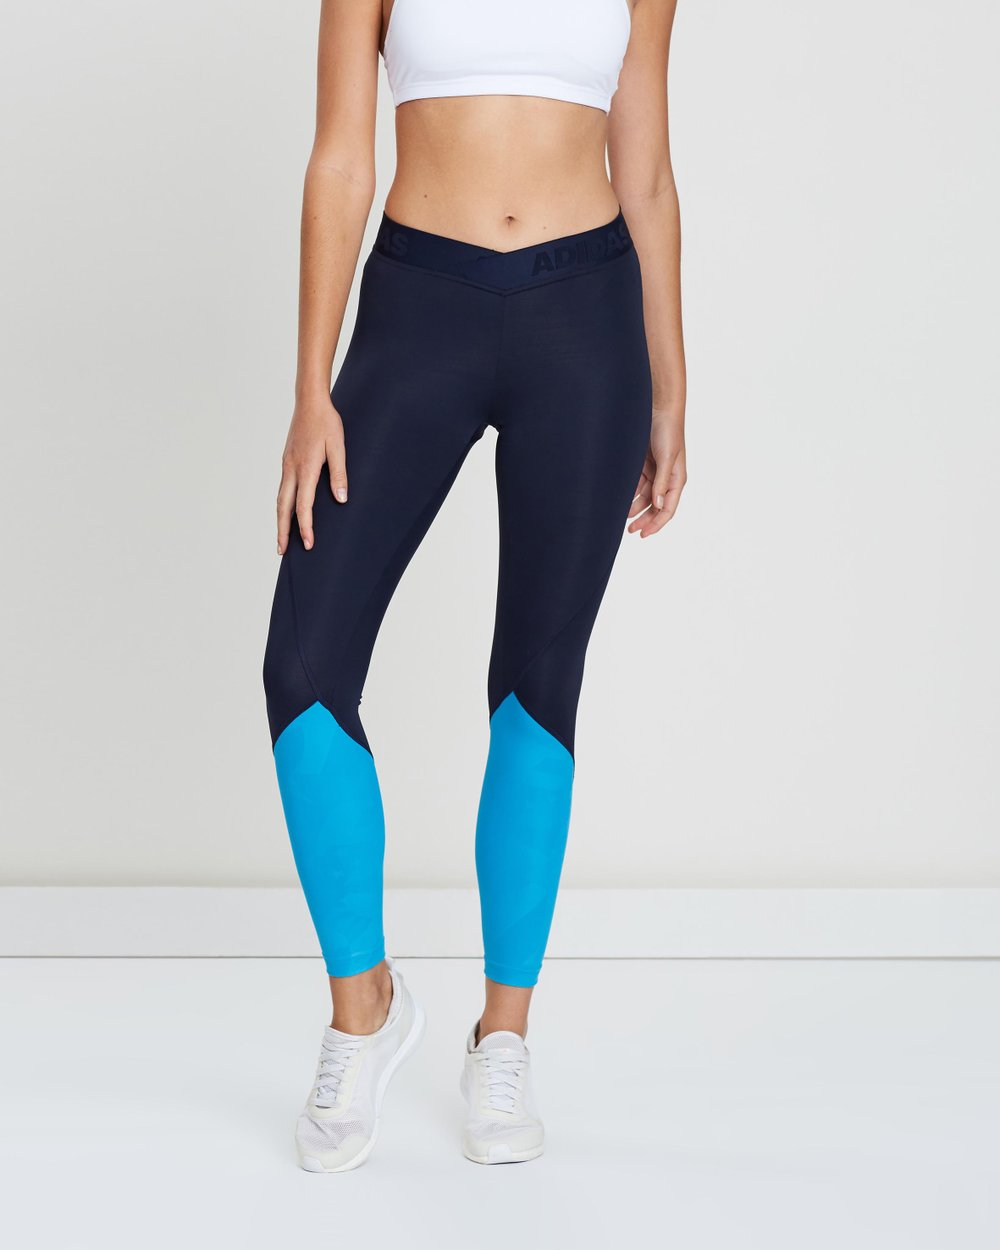 99cff4eae16b0 Alphaskin Sport 2.0 7/8 Tights by adidas Performance Online | THE ICONIC |  Australia